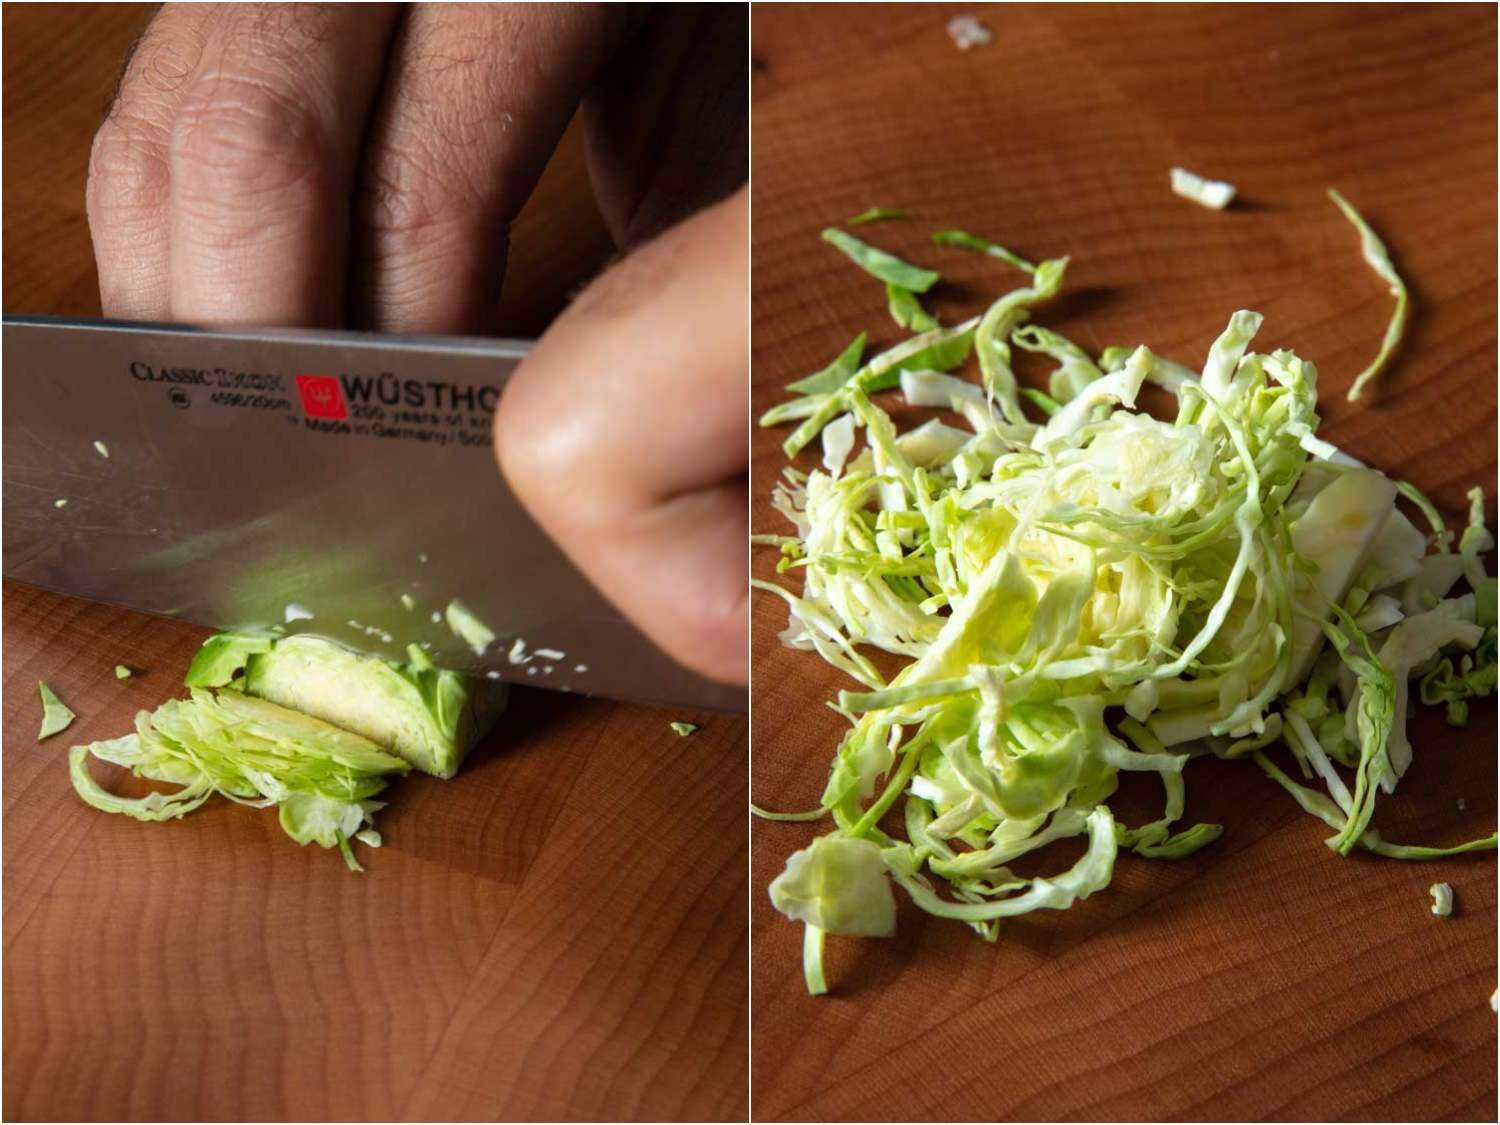 A two-photo collage showing Brussels sprouts being cut into thin slivers with a chef's knife, then the second photo shows the pile of thinly sliced sprouts on the cutting board